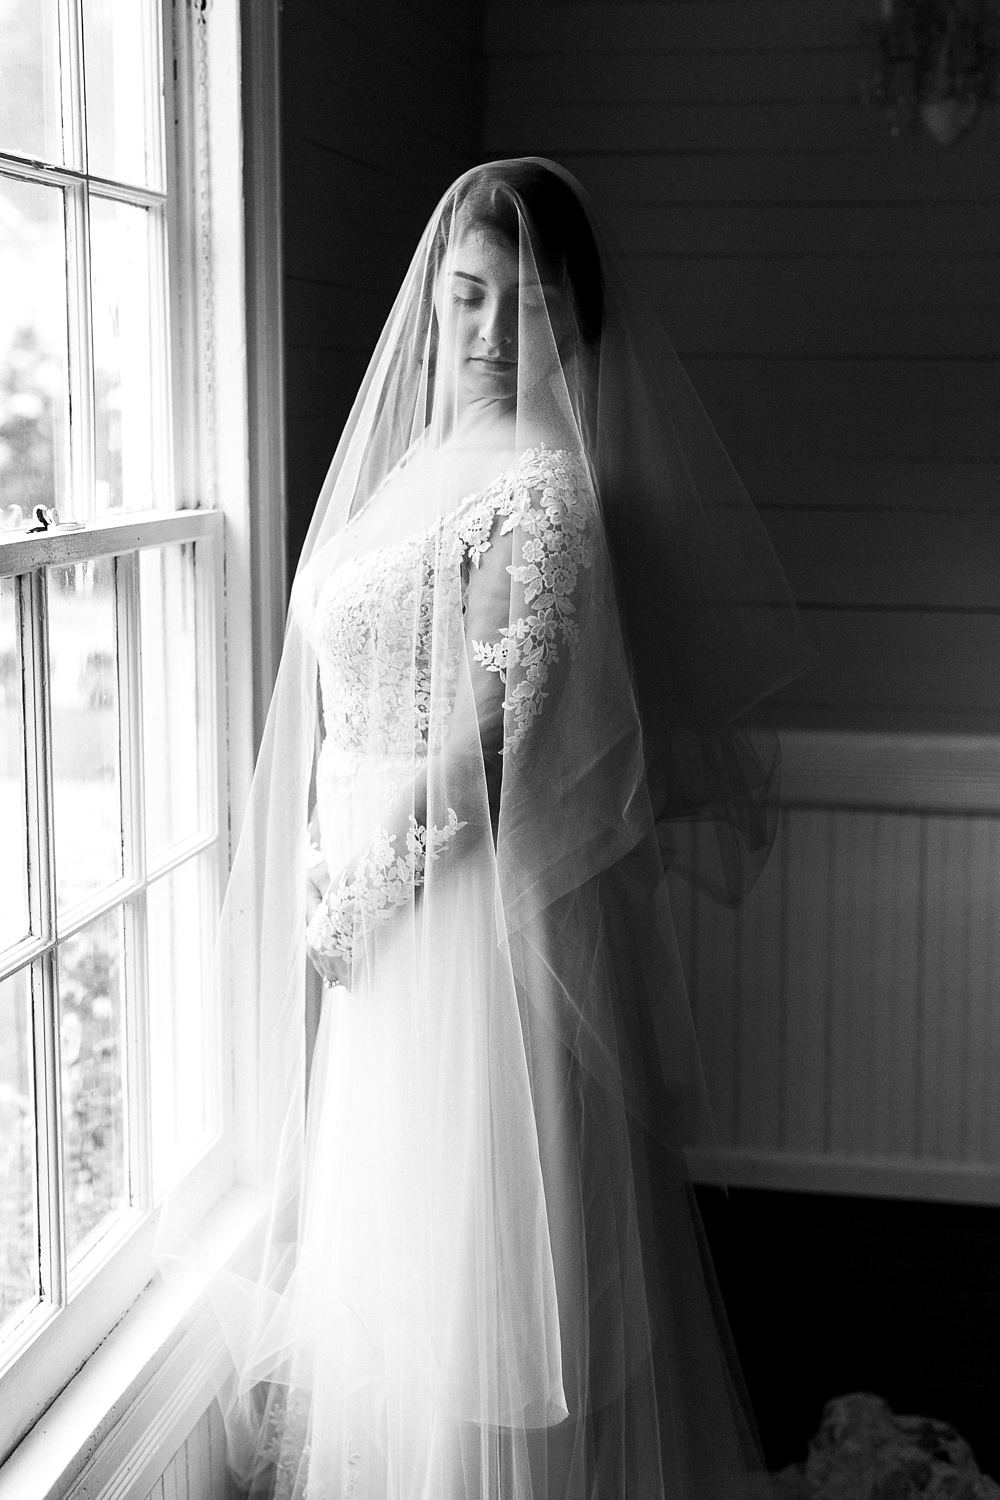 artistic bridal portrait at leslie-alford mim's house holly springs nc